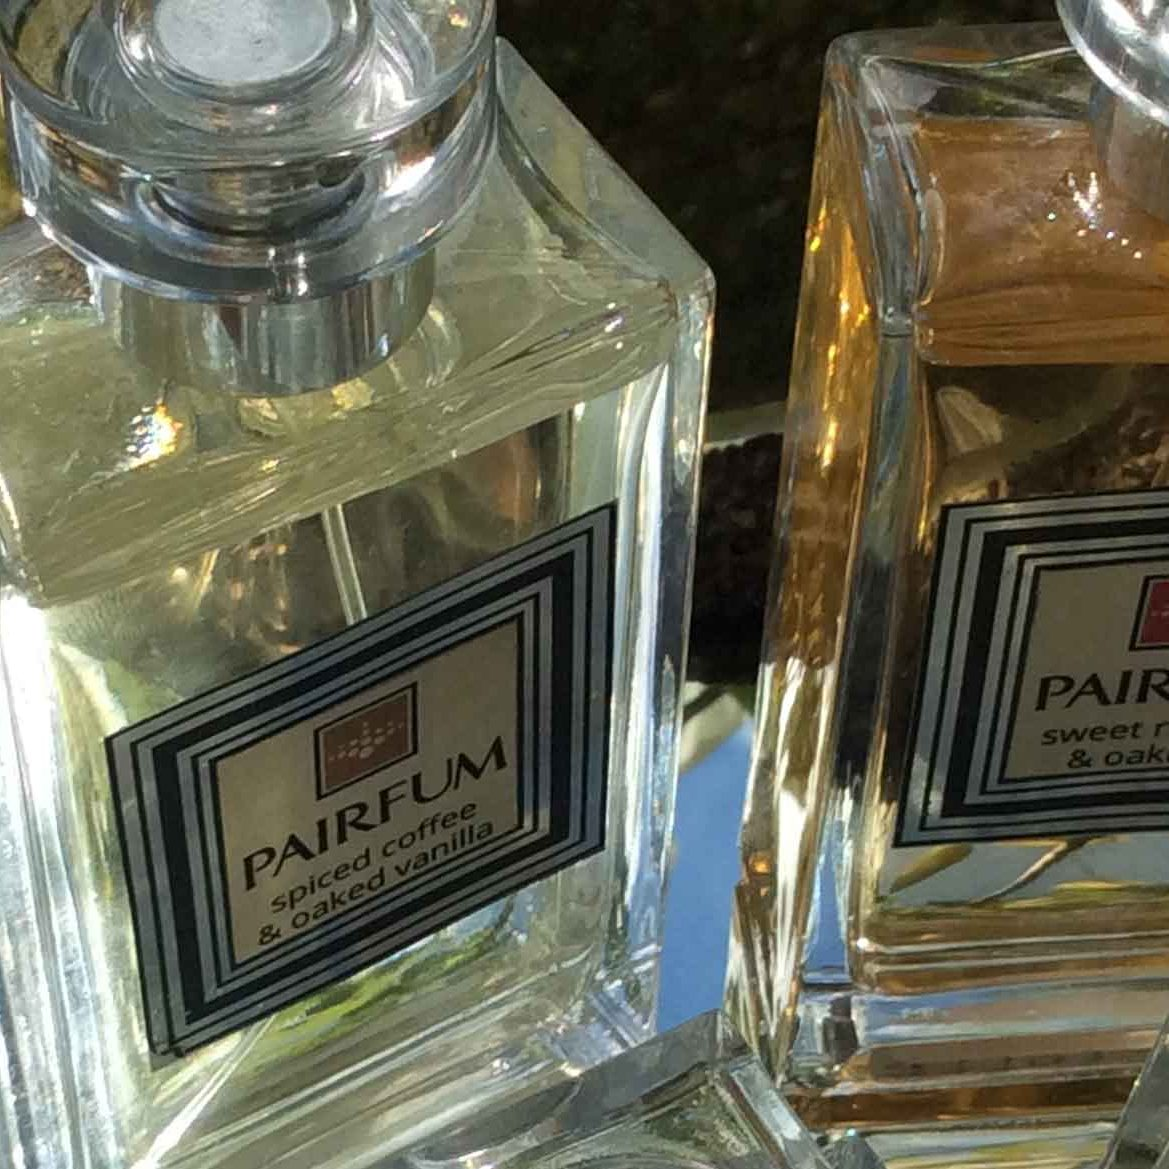 PAIRFUM boutique couture perfume eau de parfum private collection home fragrance skin care sweet rhubarb oakmoss